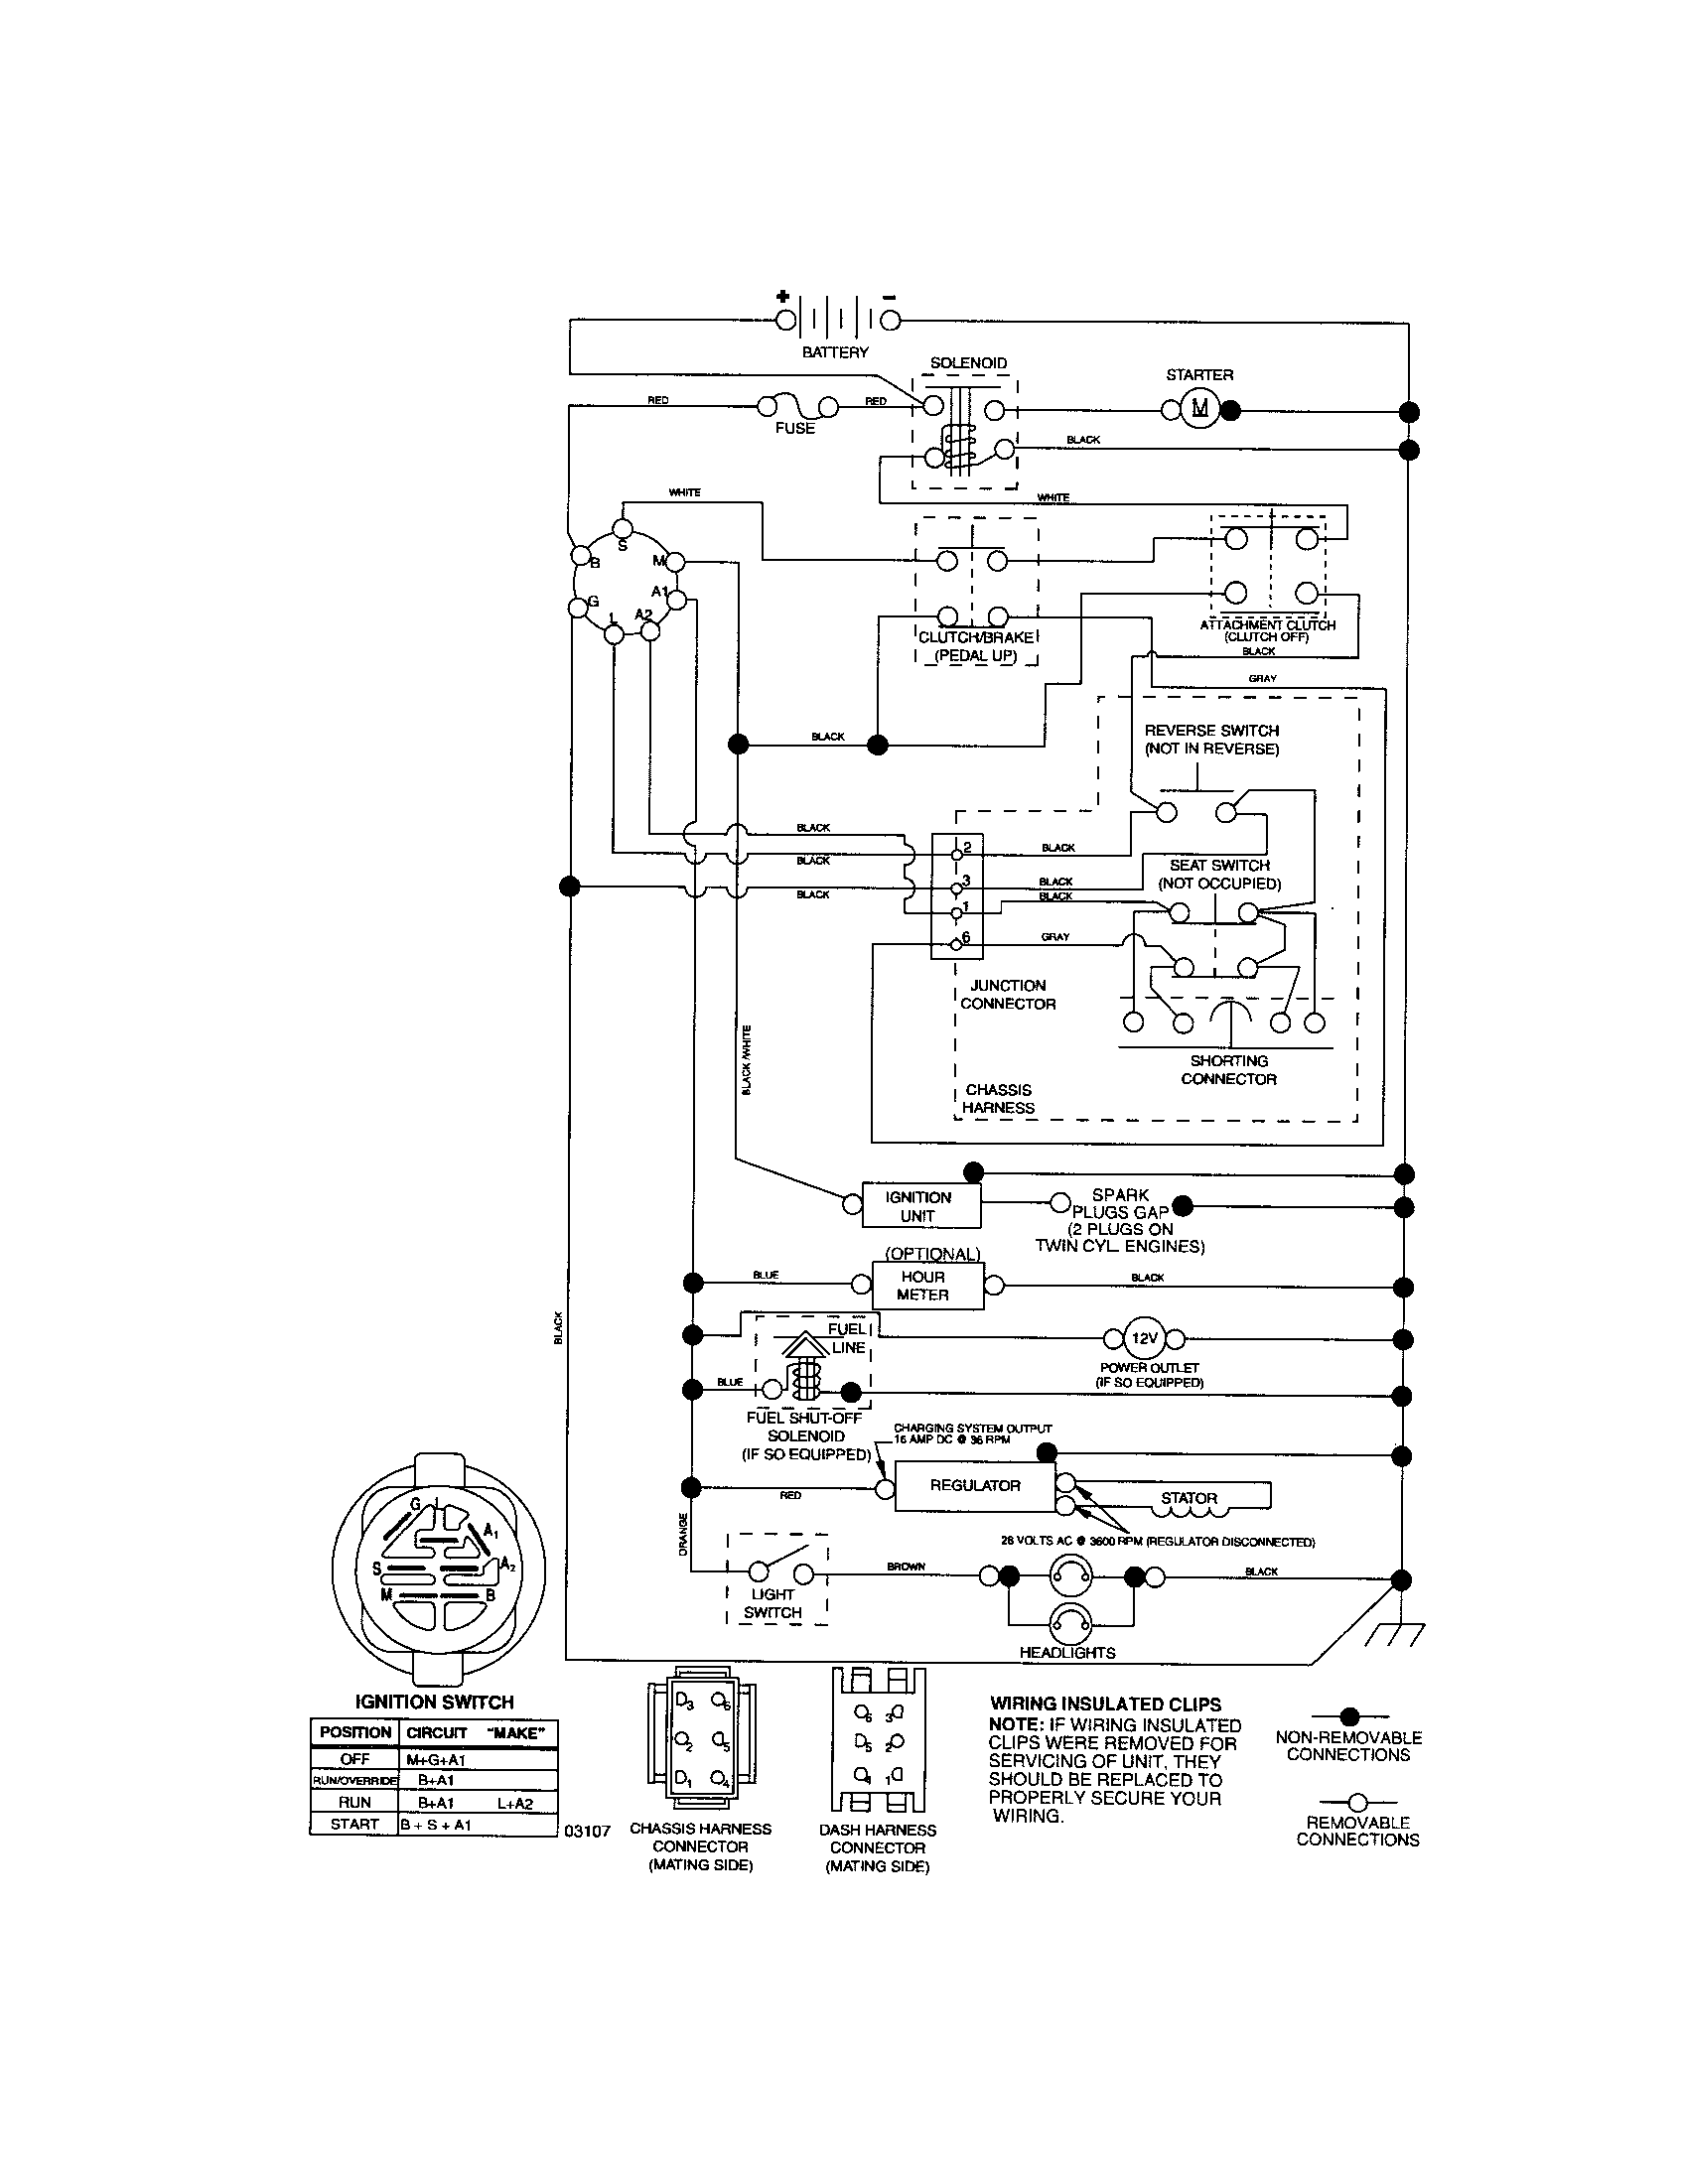 craftsman riding mower electrical diagram wiring diagram craftsman rh pinterest com wiring schematic for scotts lawn tractor jd 240 lawn tractor wiring schematic